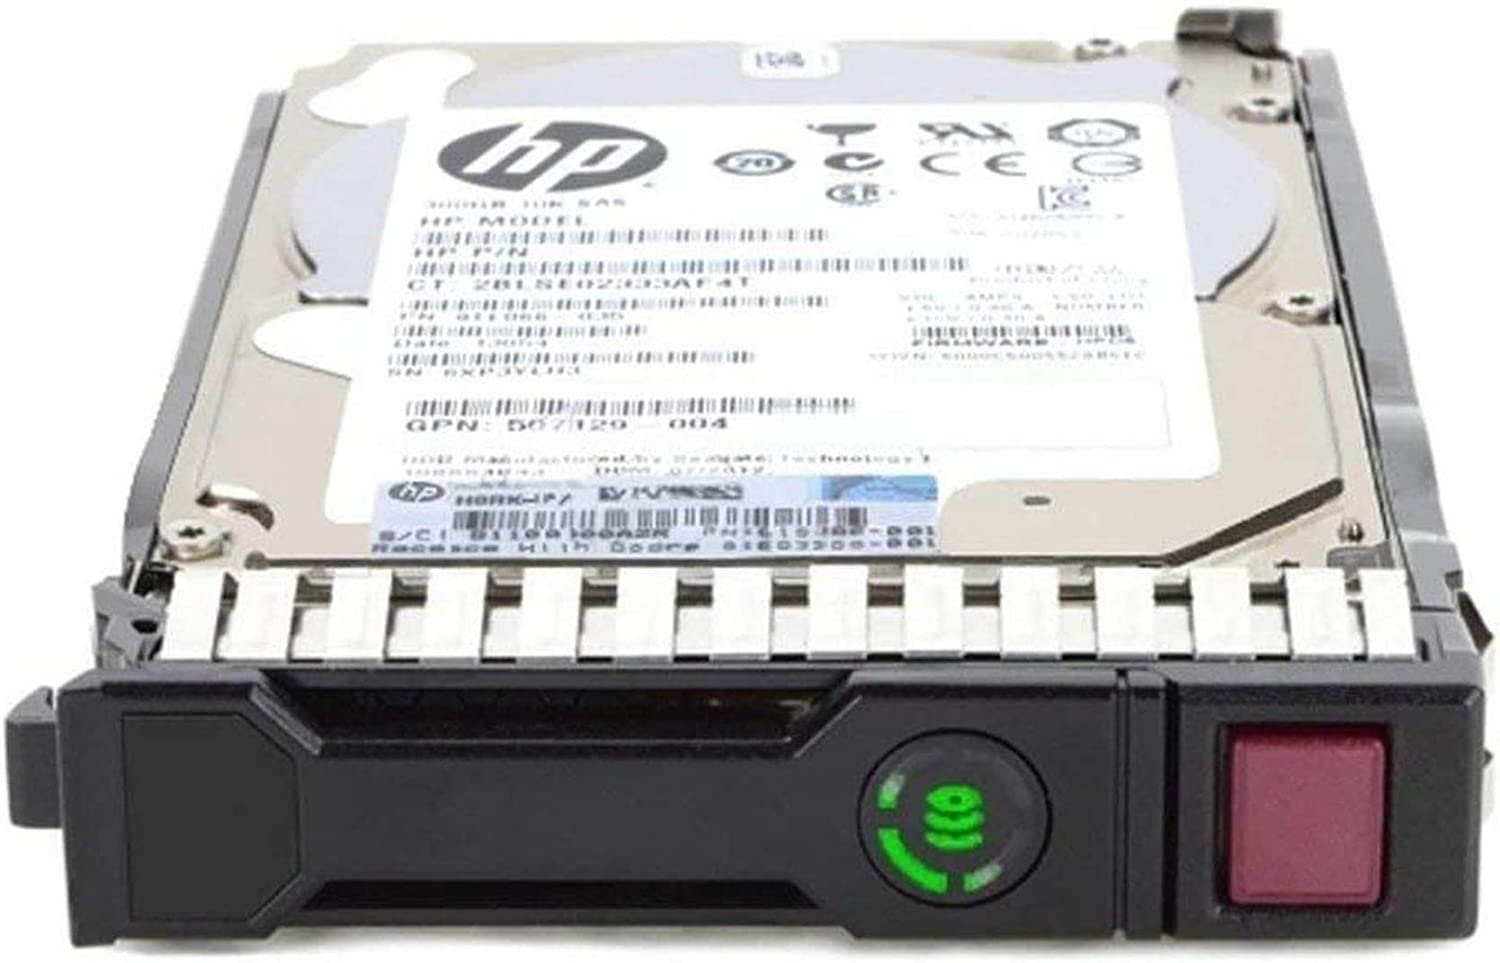 HP 881457-B21 Enterprise - Hard drive - 2.4 TB - hot-swap - 2.5 inch SFF - SAS 12Gb/s - 10000 rpm - with HPE SmartDrive carrier